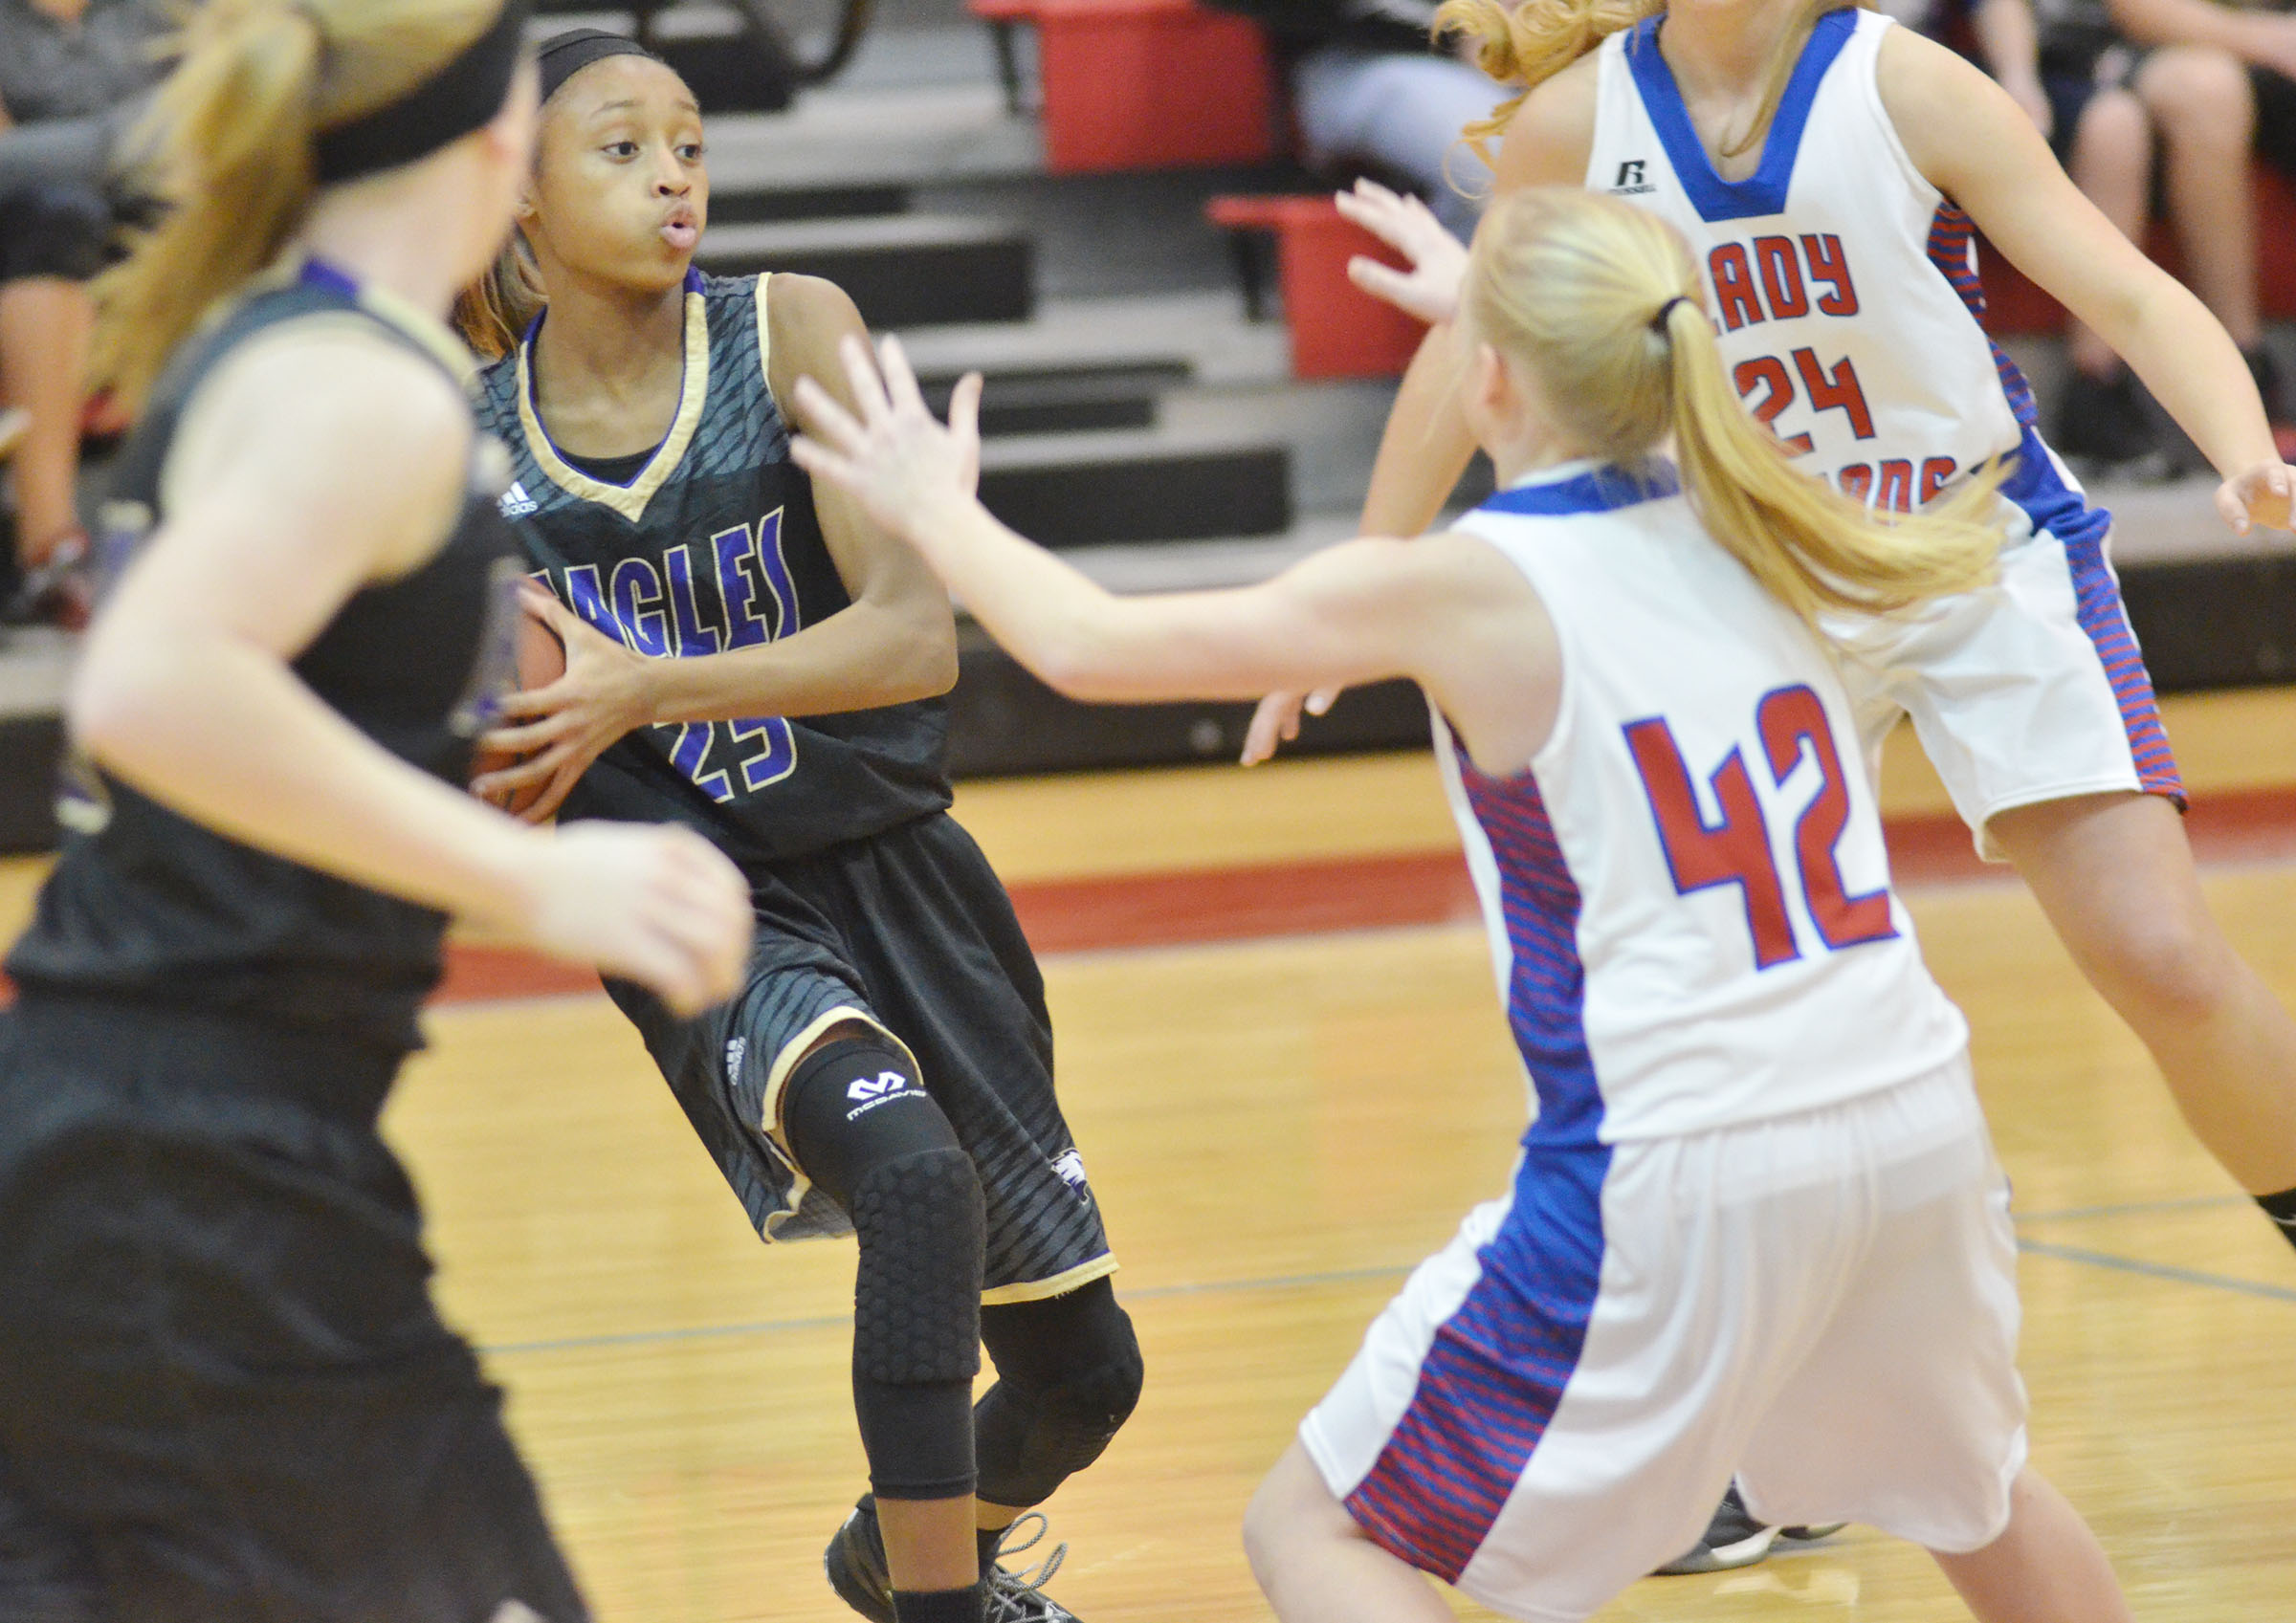 Campbellsville Middle School seventh-grader Bri Gowdy protects the ball.